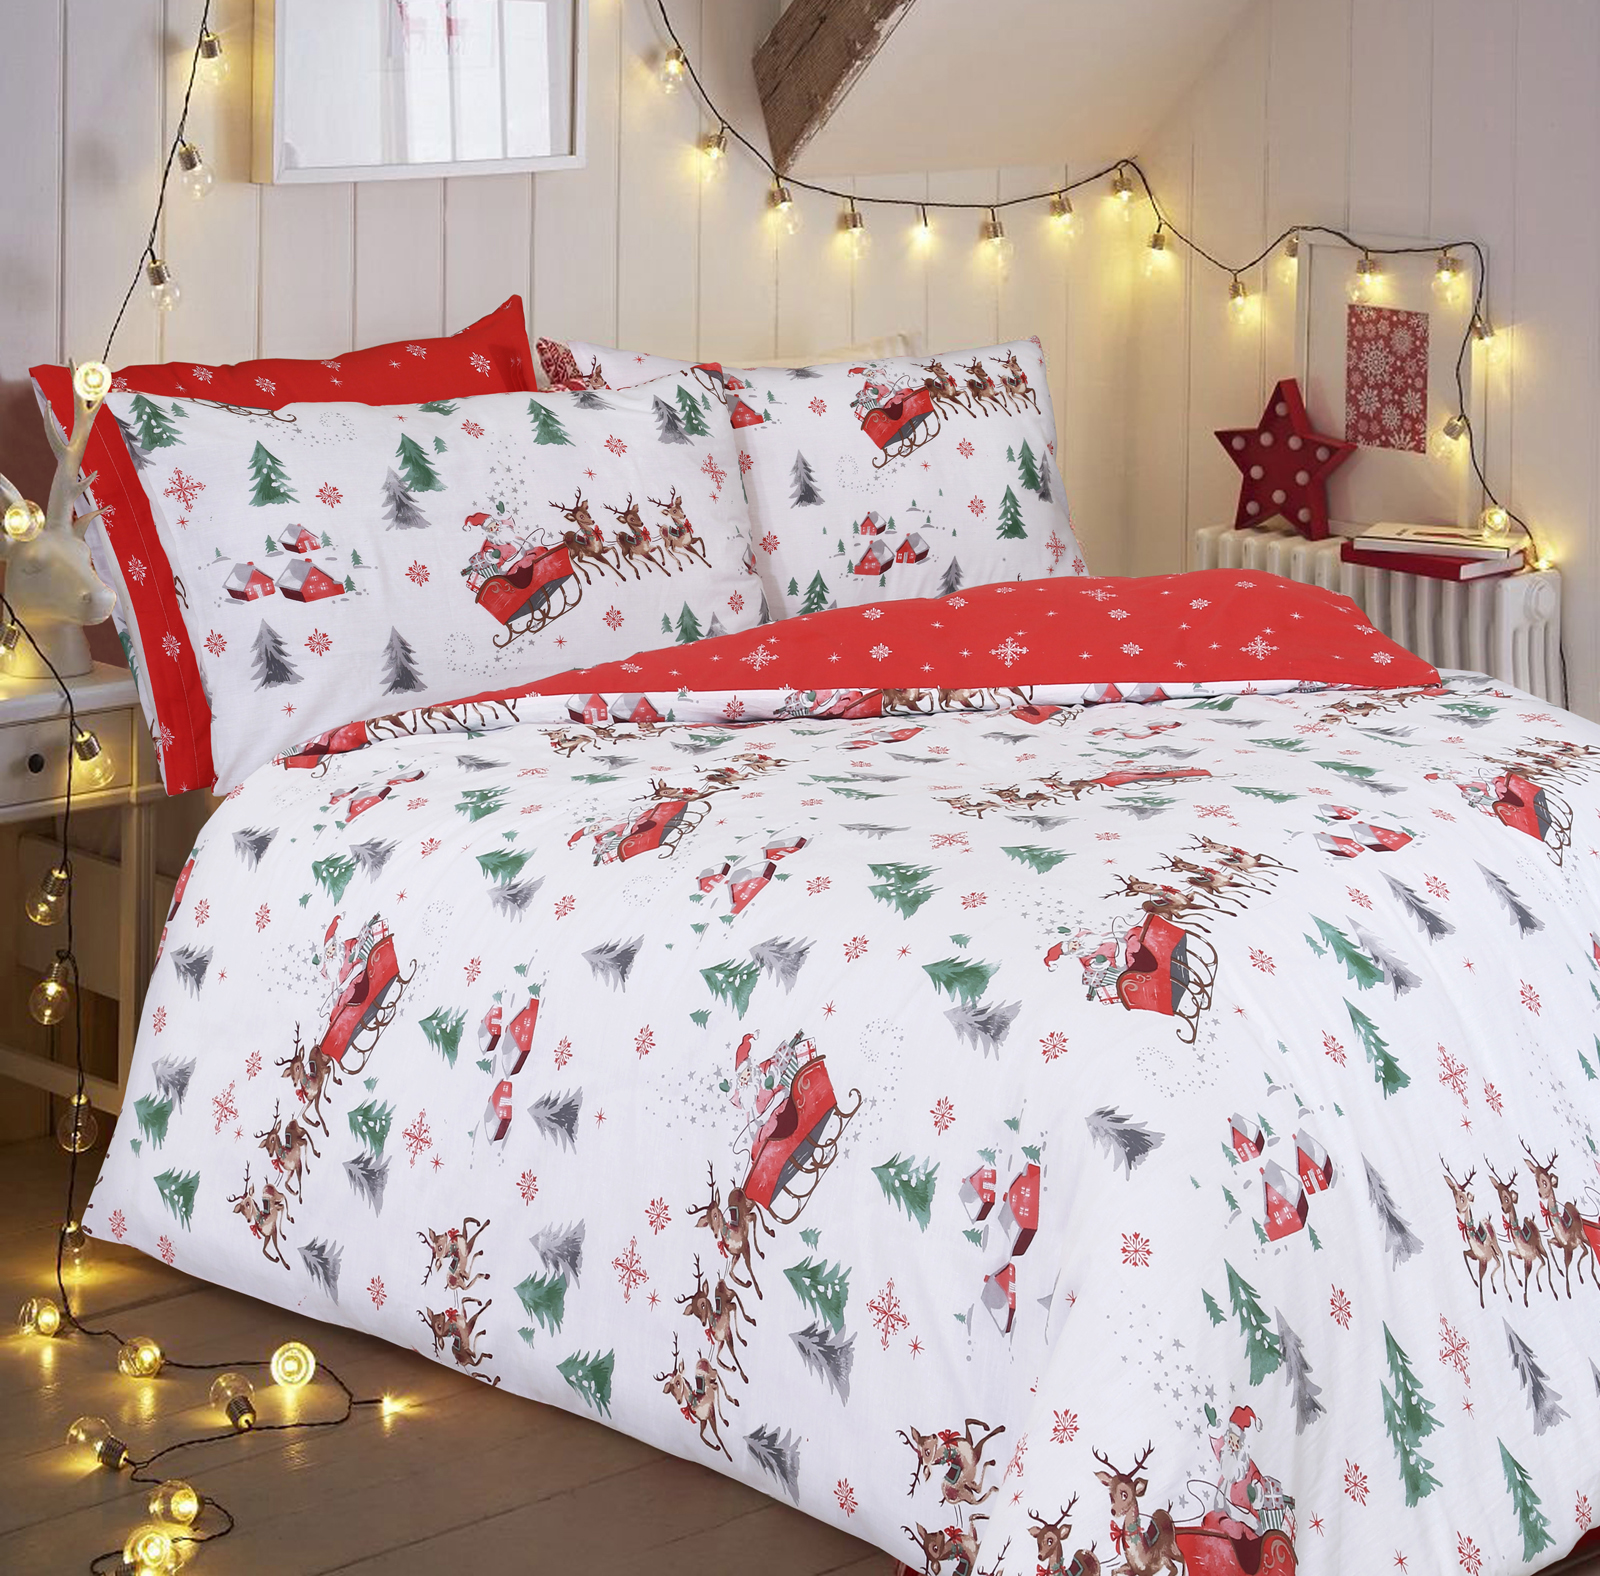 christmas elf chair covers cochrane oak table and chairs santa sleigh duvet cover set wholesale bedding store